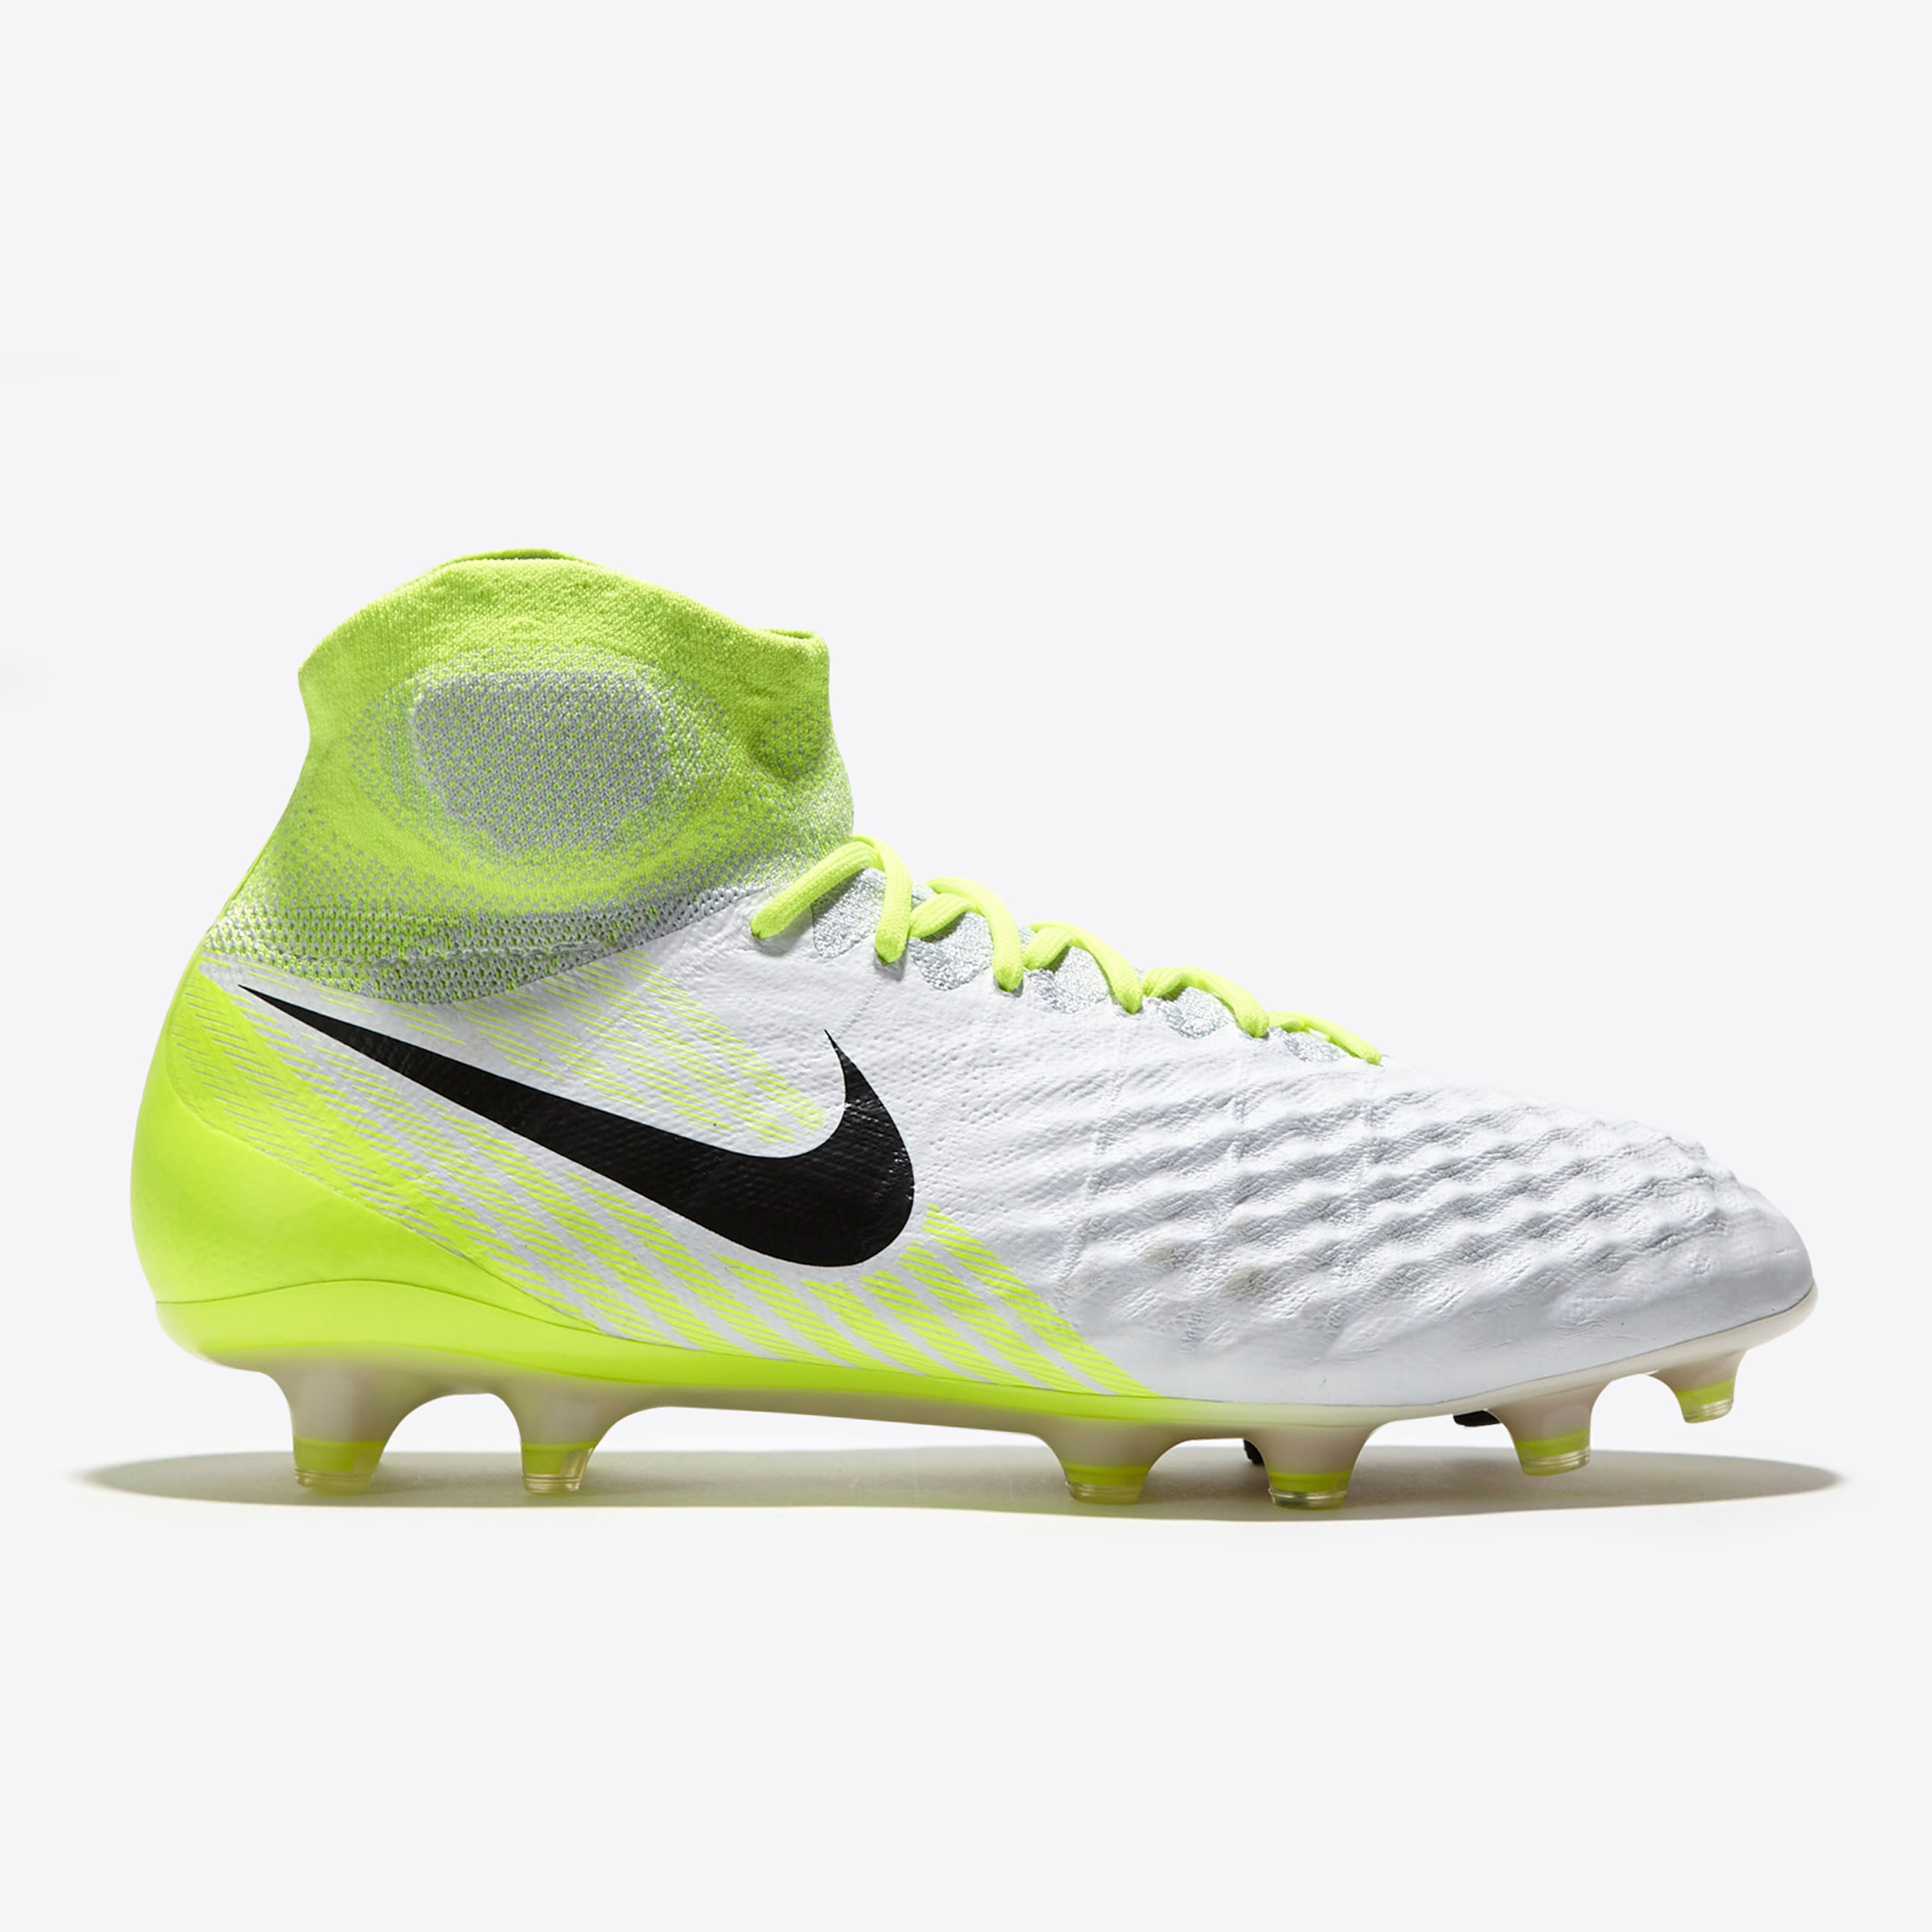 low priced 8fa2c 59a13 Nike Magista Obra II FG White Black Volt Pur